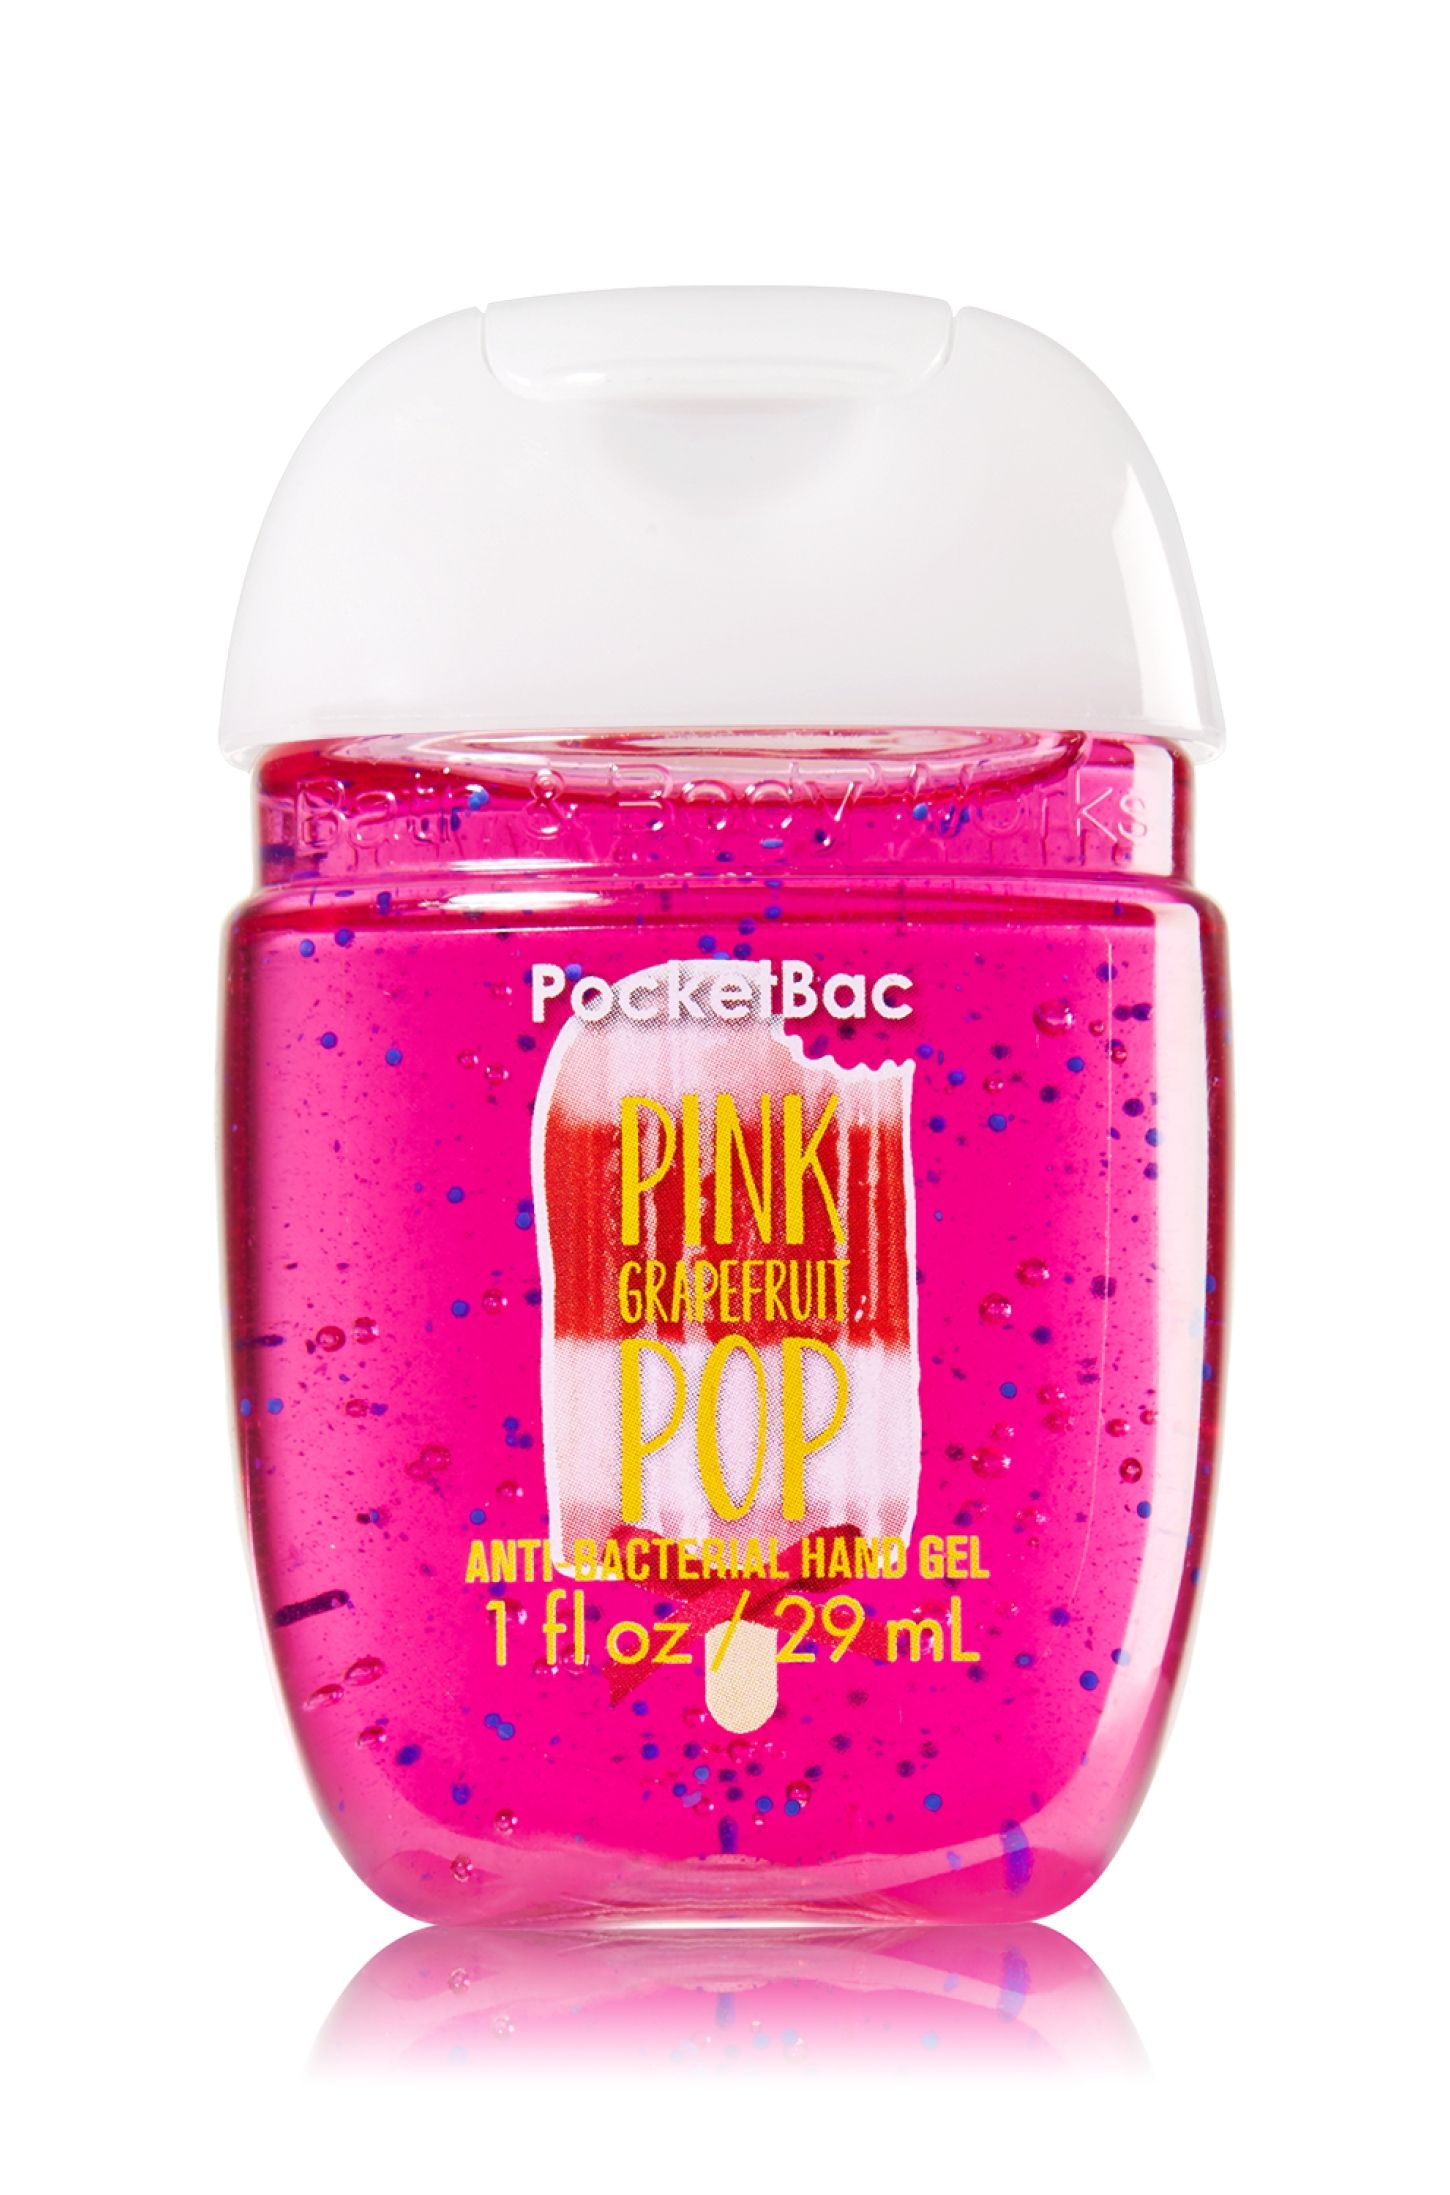 Pink Grapefruit Pop Pocketbac Sanitizing Hand Gel Soap Sanitizer